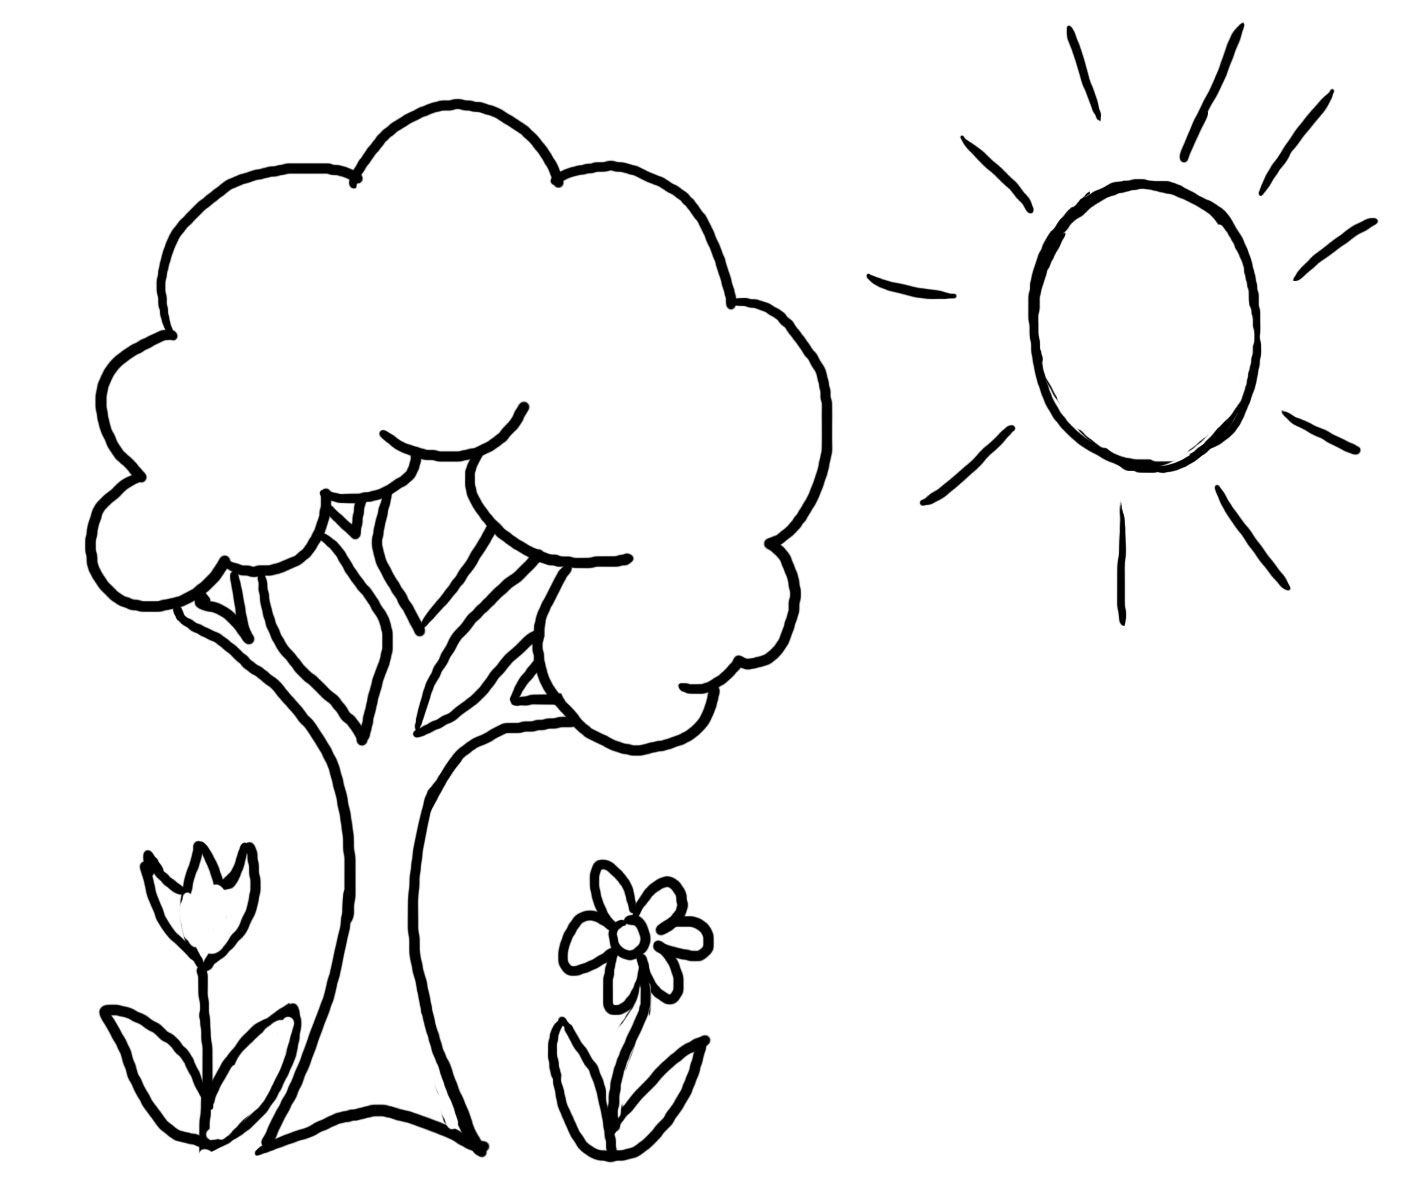 Preschool Spring Season Coloring Pages Free Printable Coloring